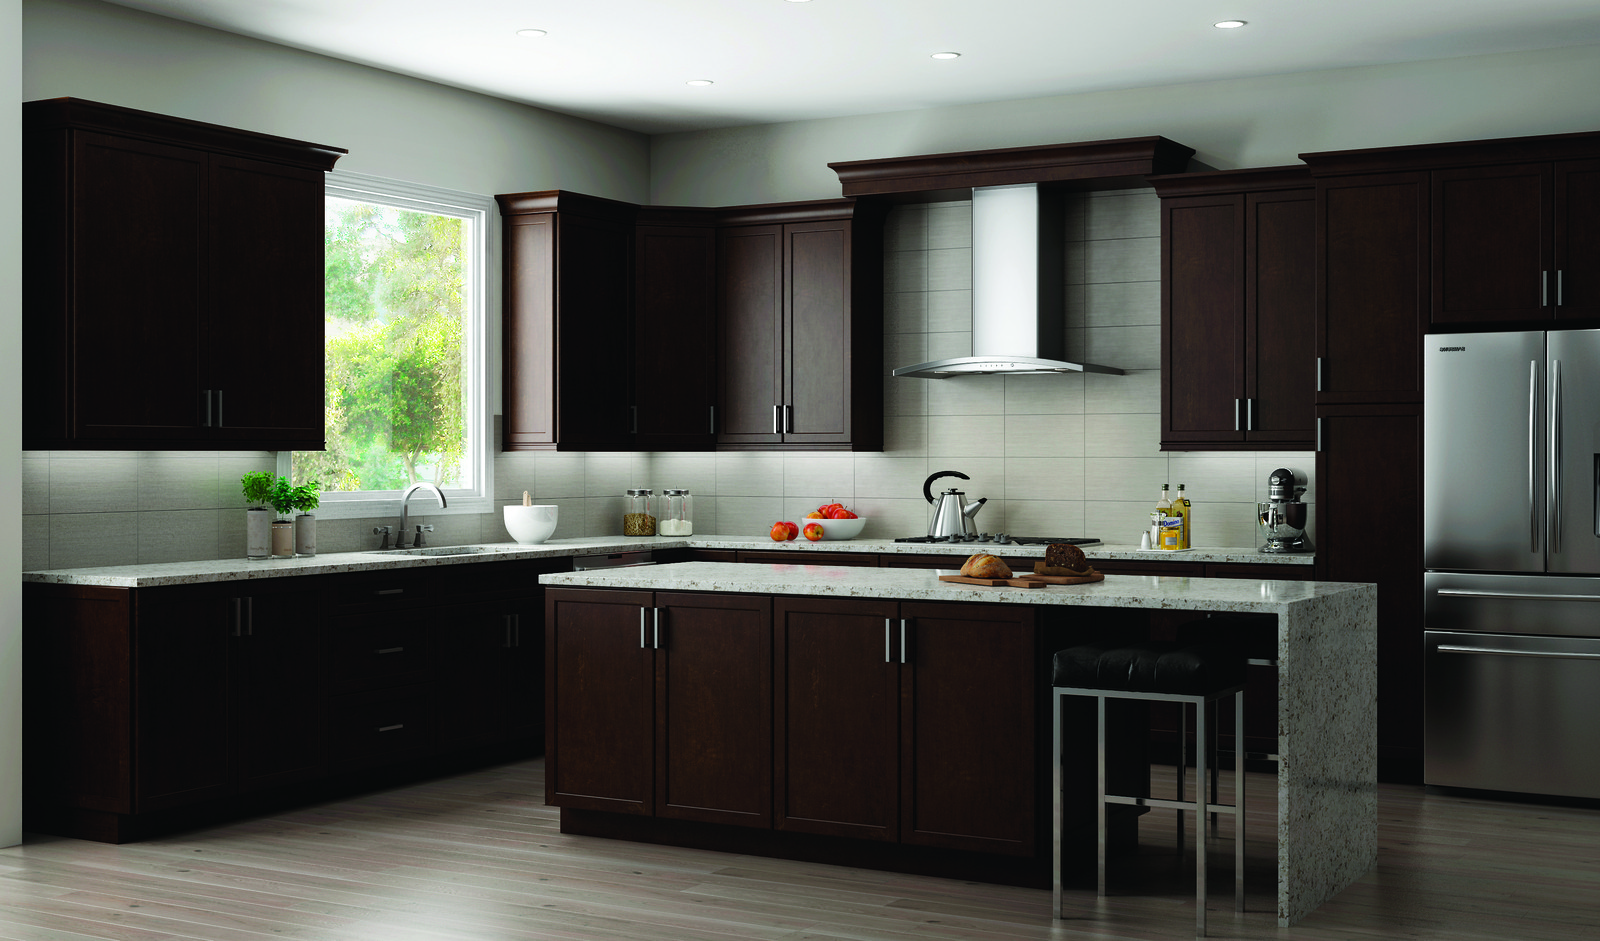 Oxford Kitchen Cabinets Home Depot Oxford Wolf Transition Bj Floors And Kitchens